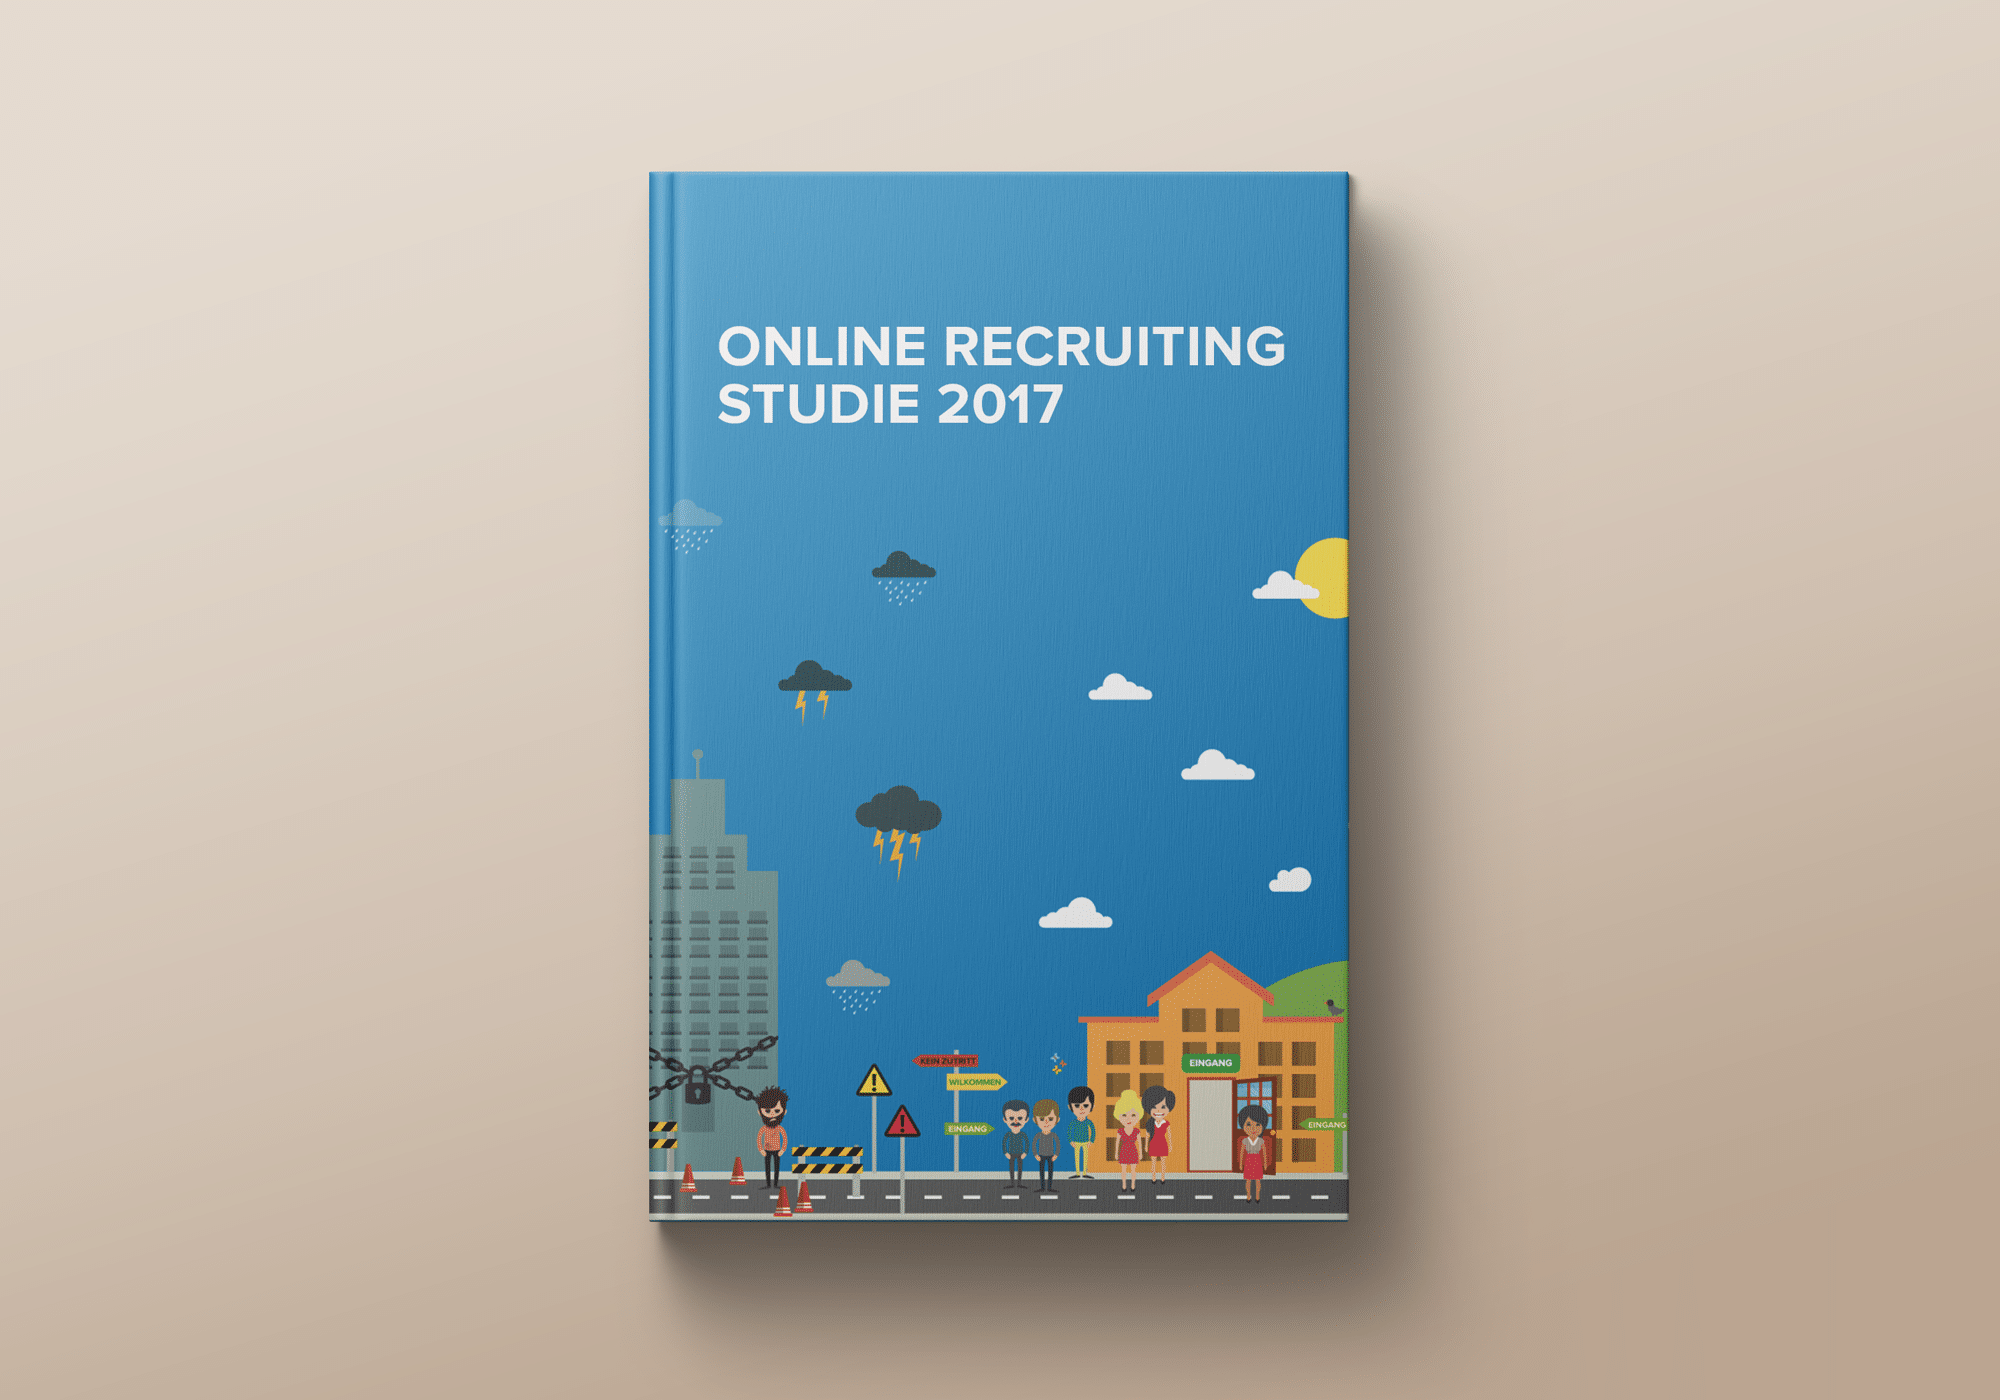 Online Recruiting Studie 2017